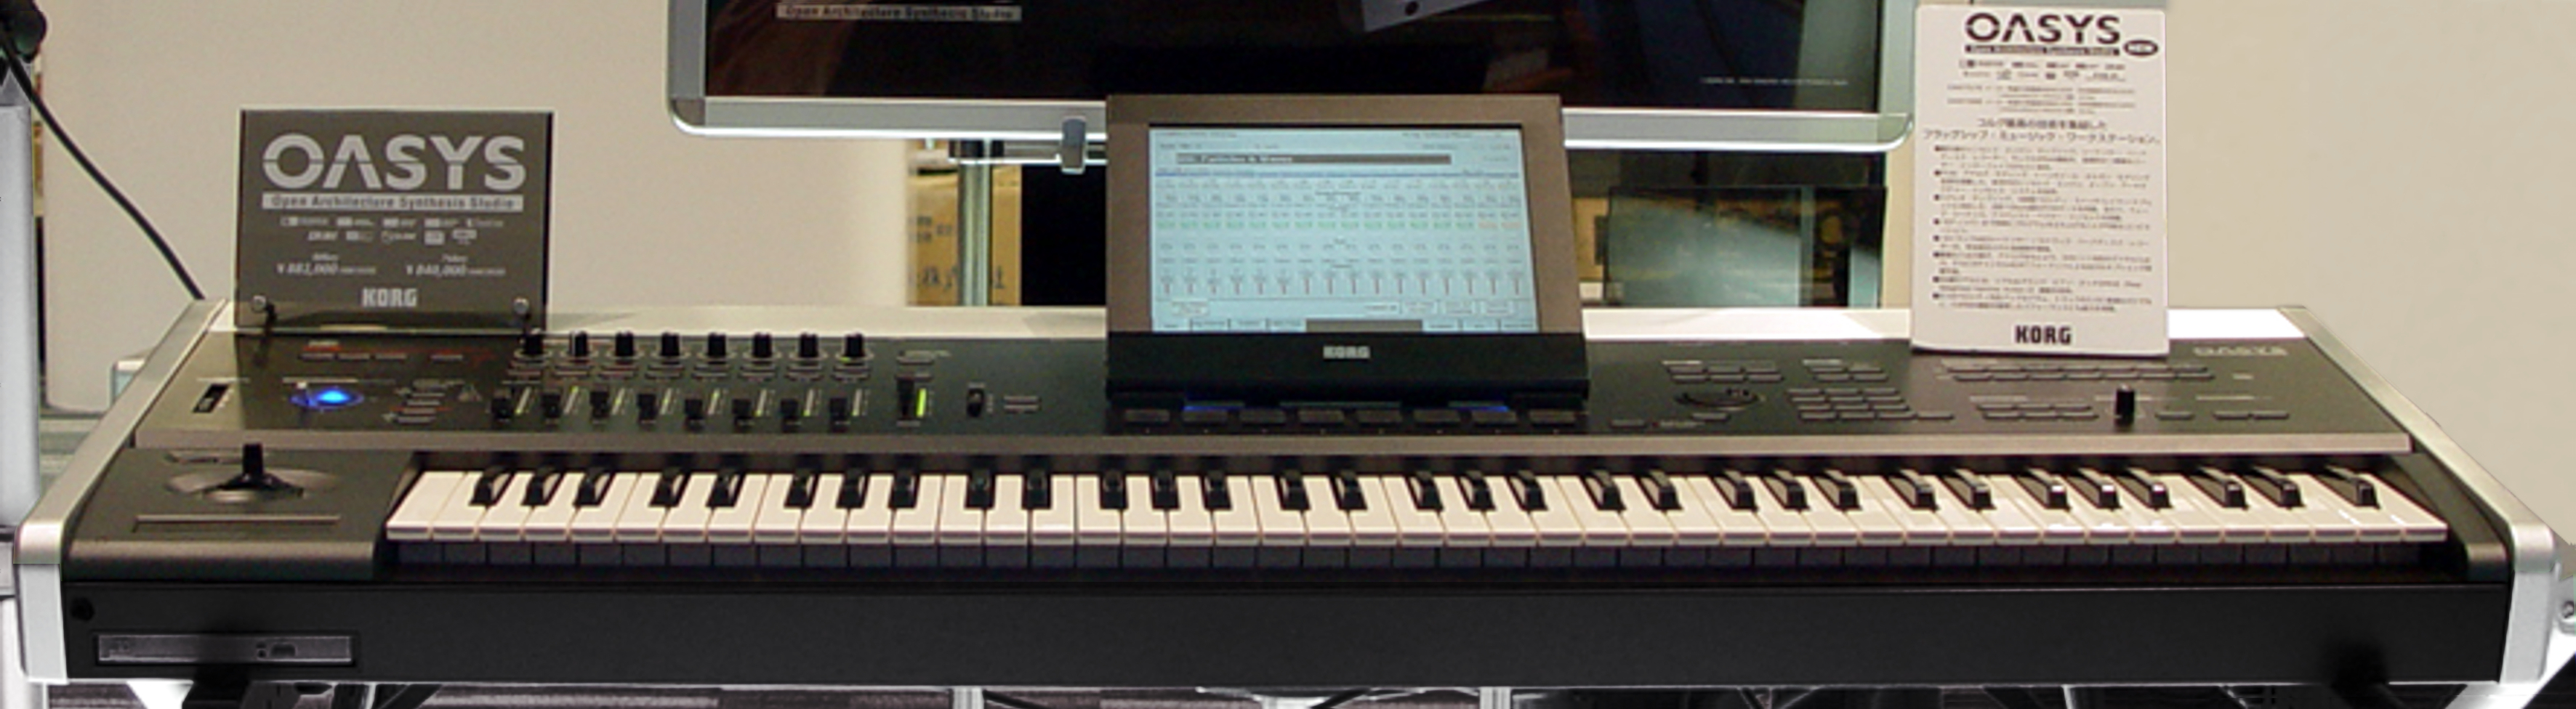 File:KORG OASYS.jpg - Wikimedia Commons3544